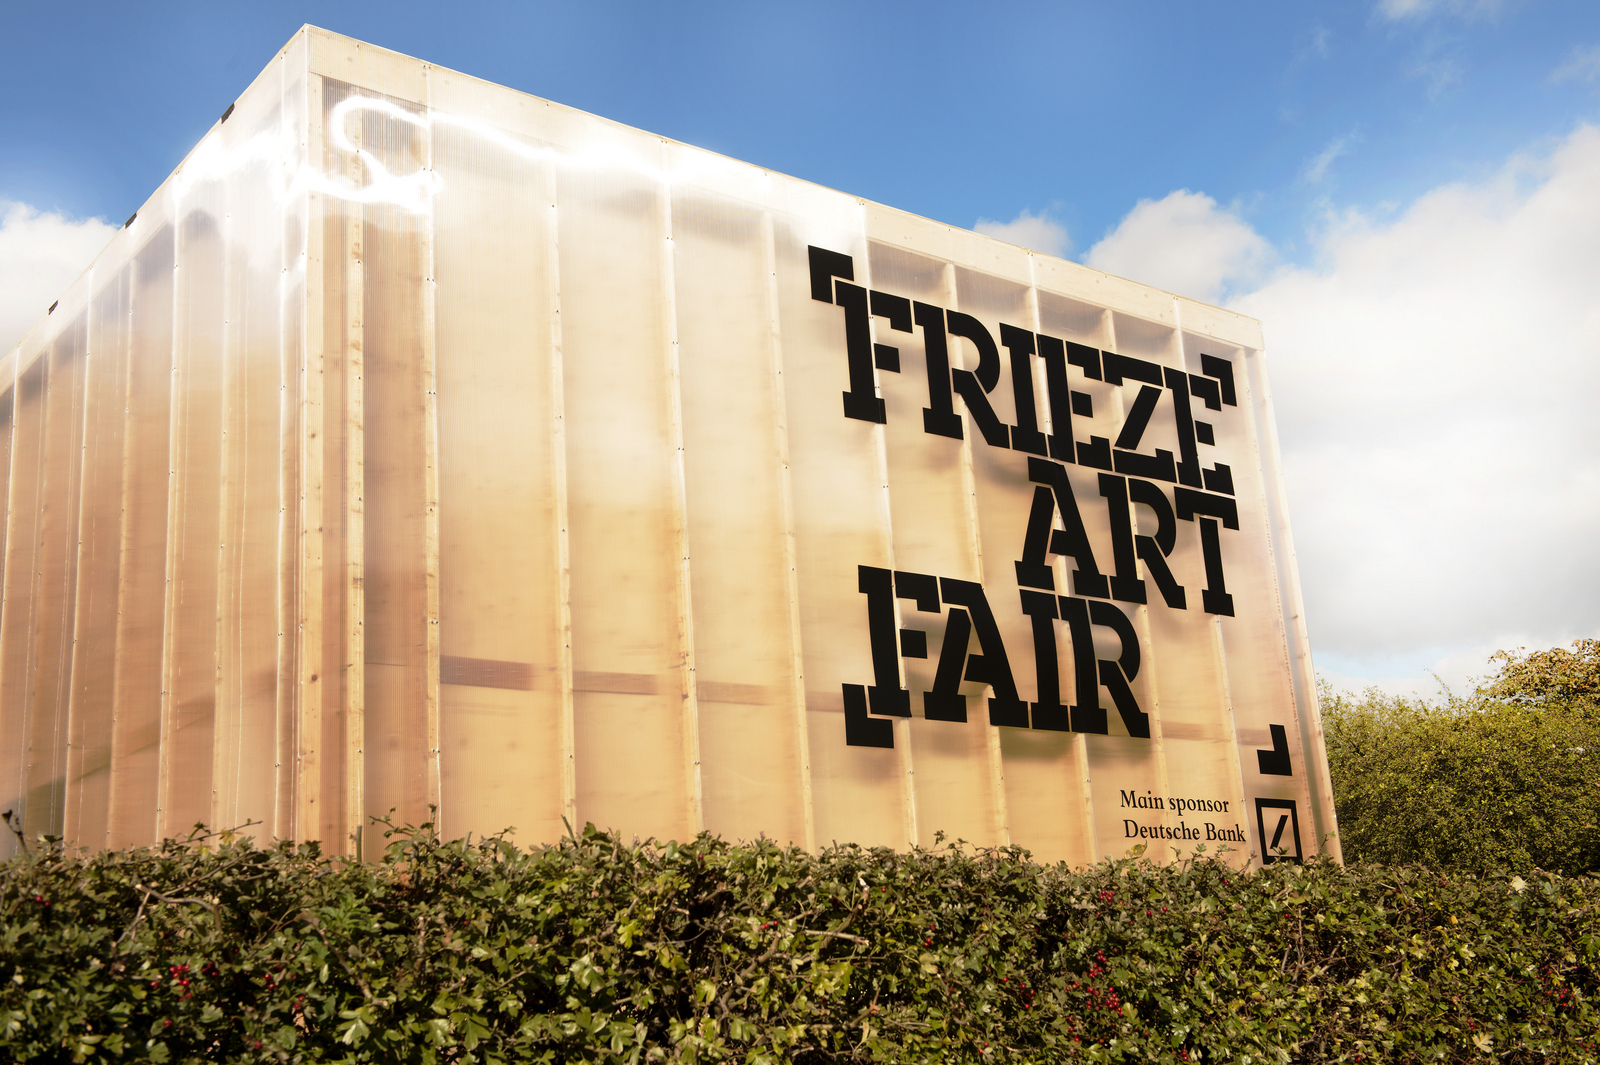 Frieze Art Fair, London, 2013